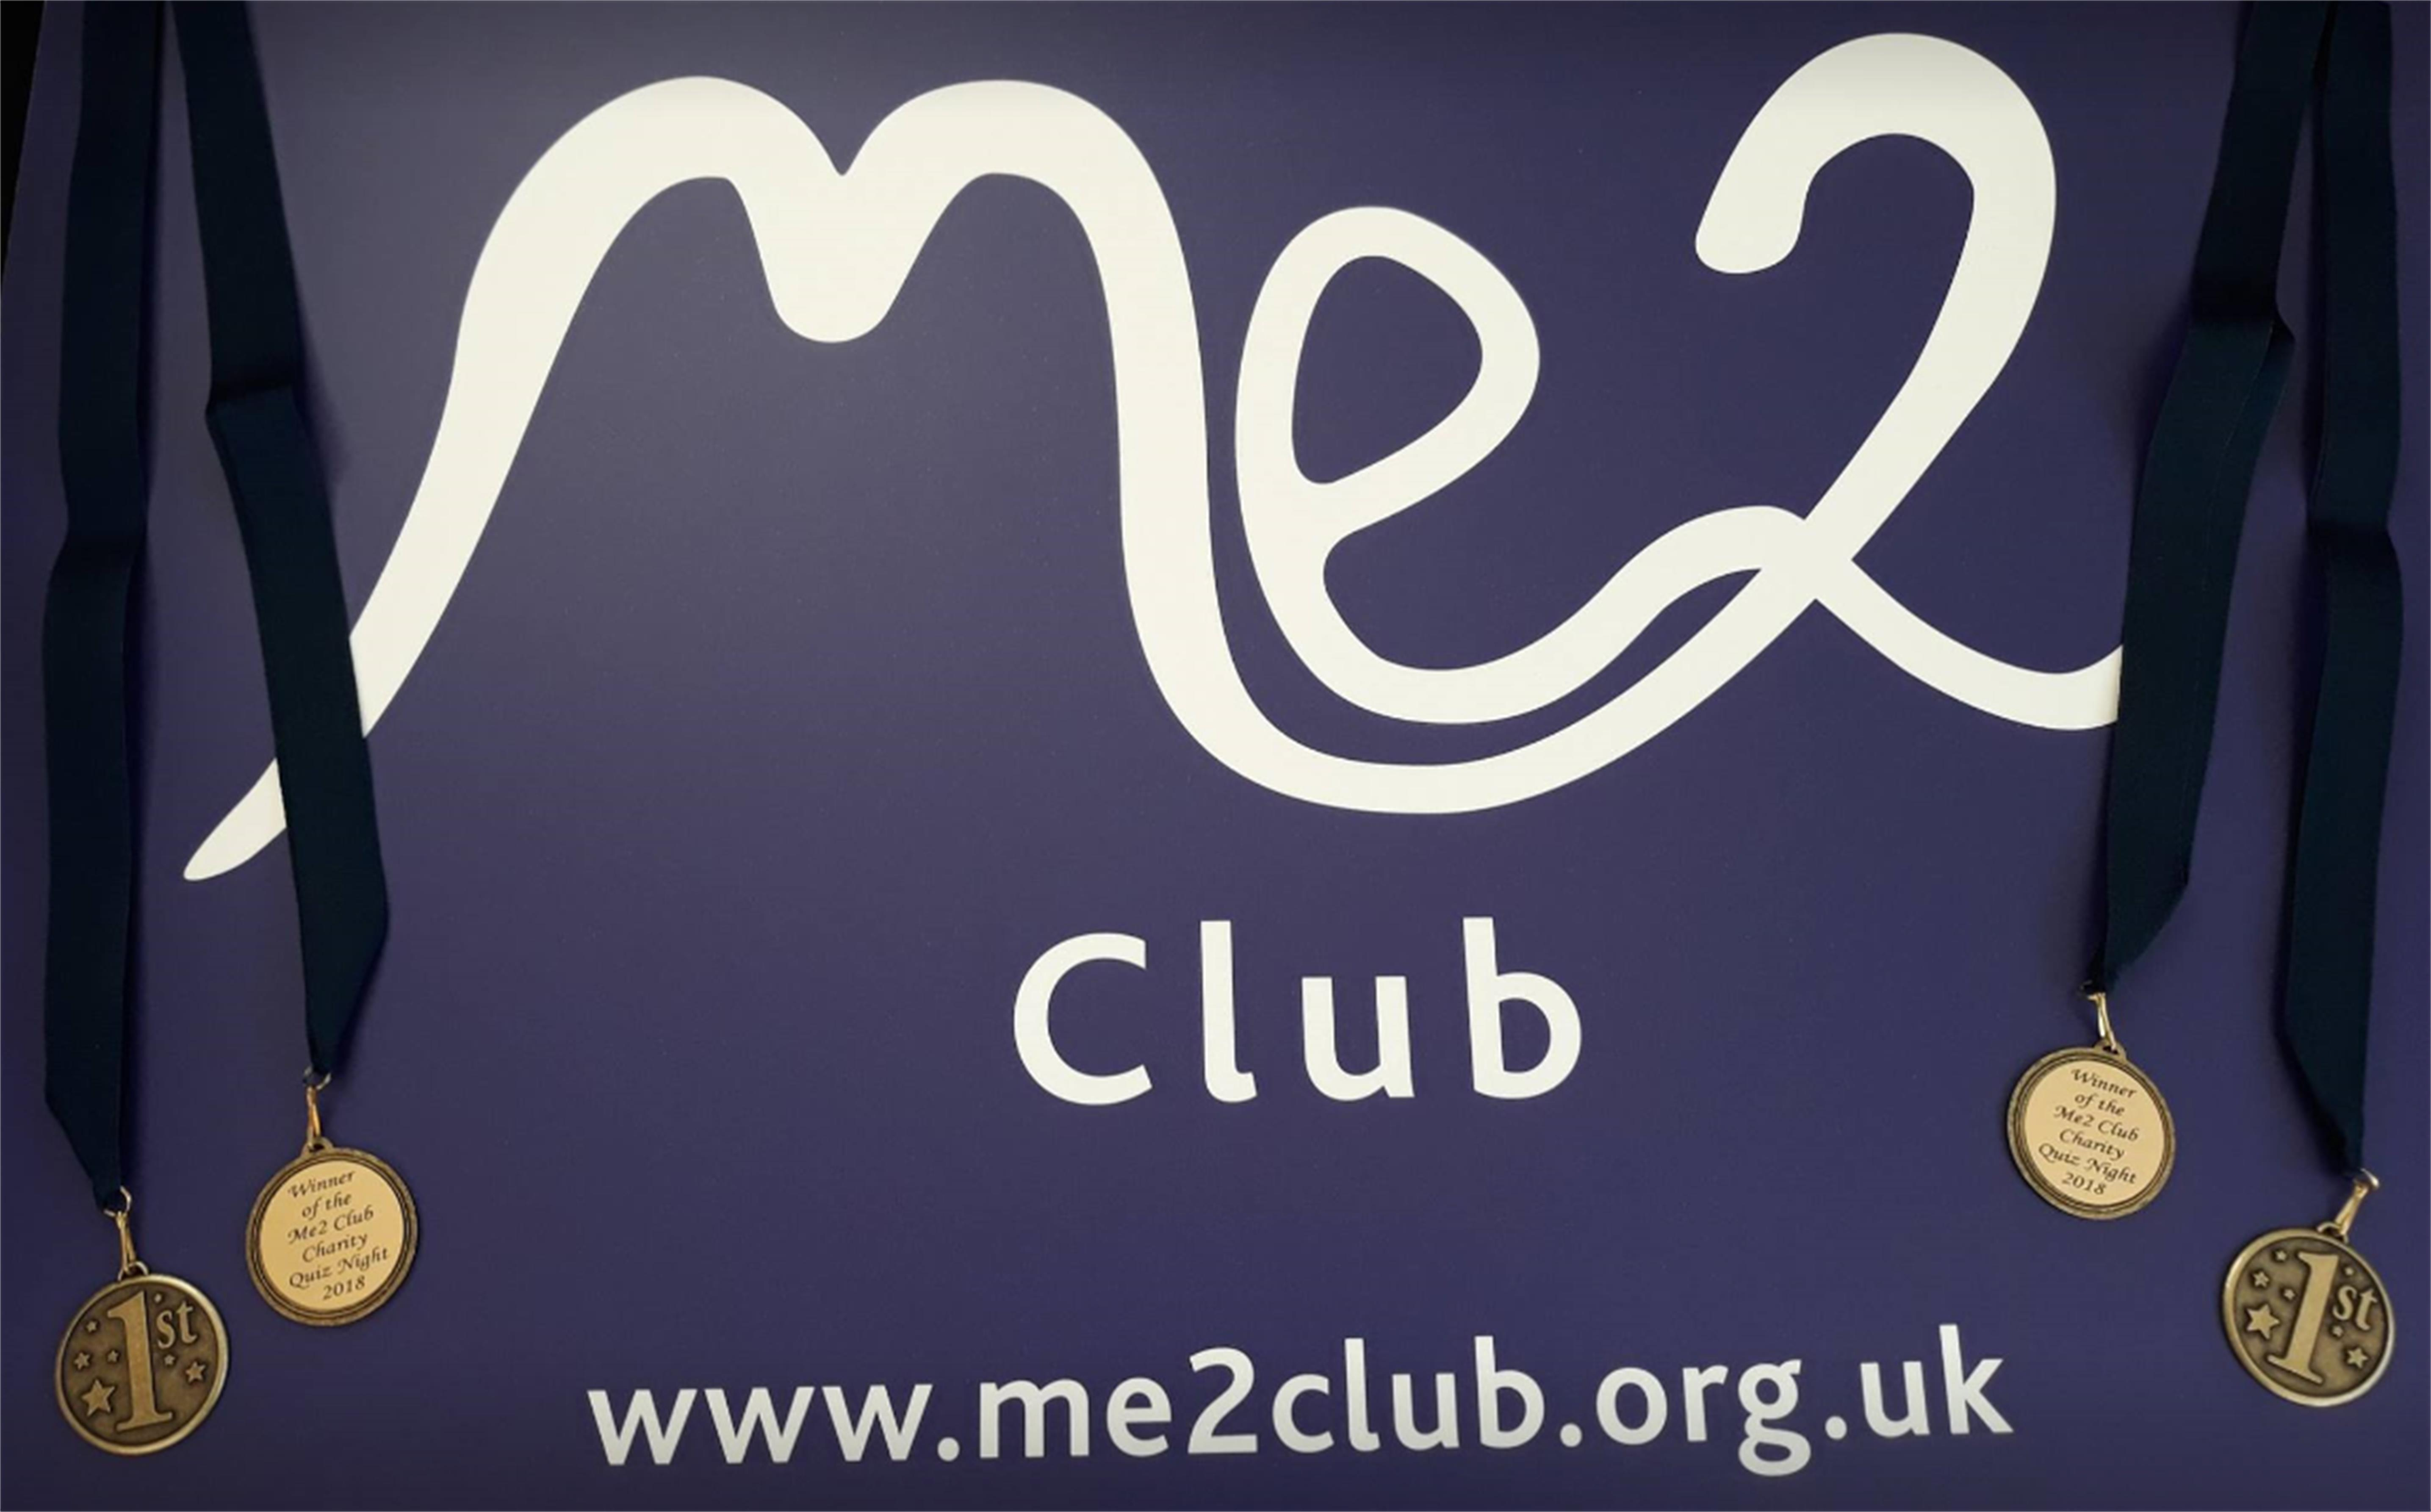 Charities that we support - Me2 club